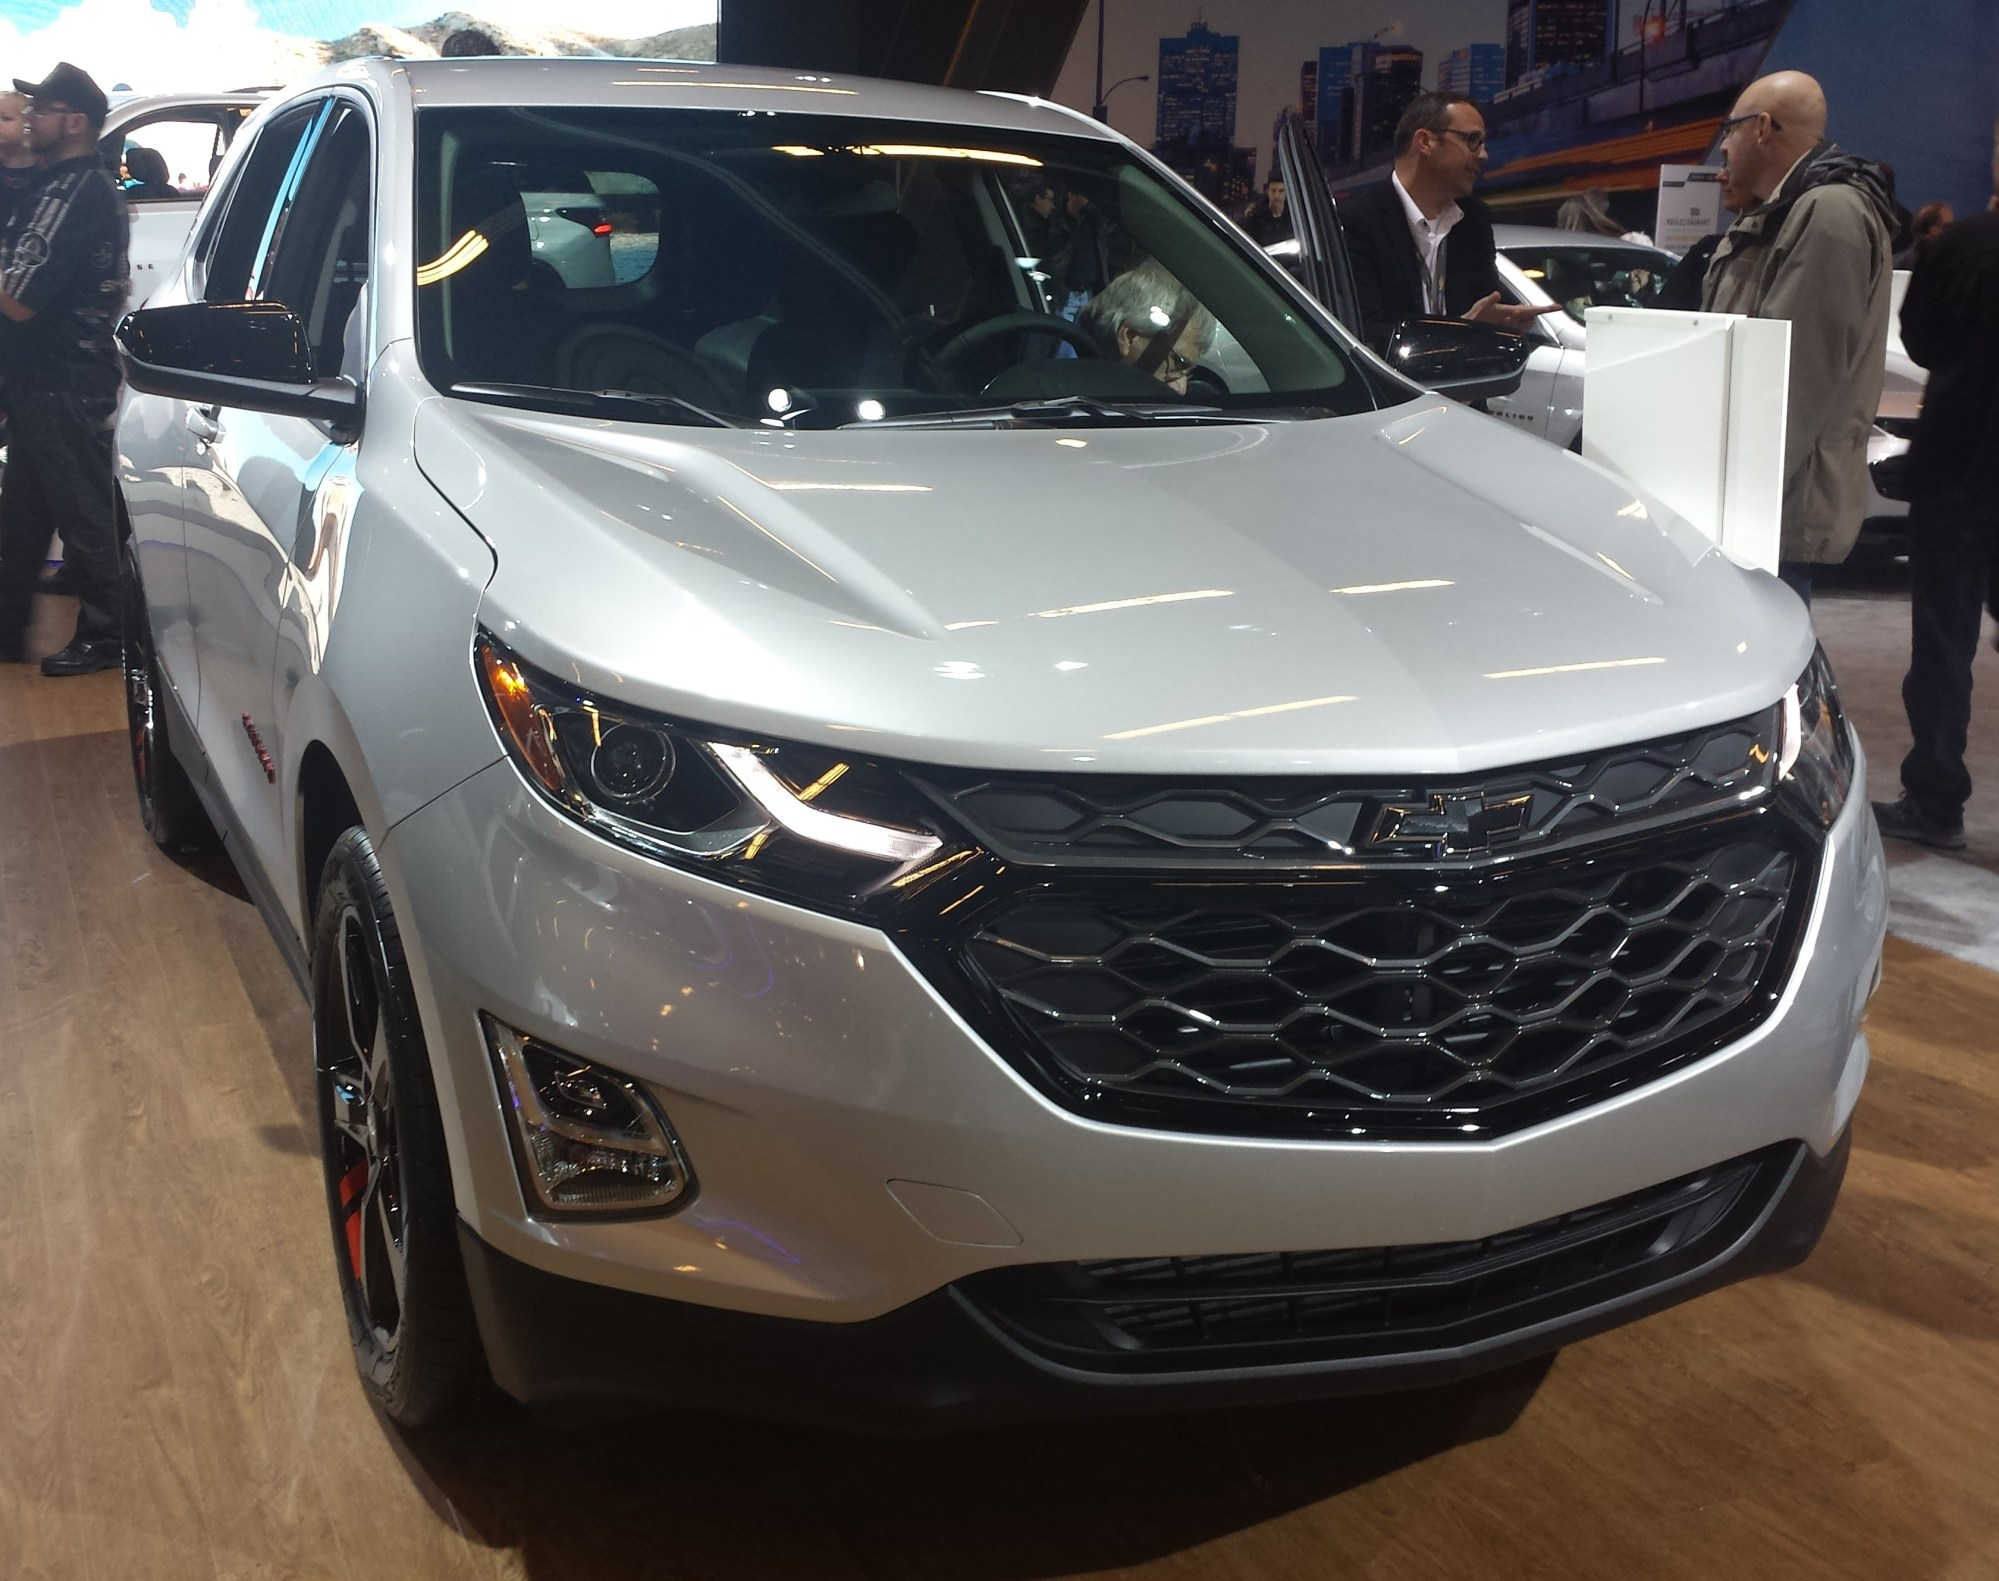 hight resolution of file 2018 chevrolet equinox au siam 2018 jpg